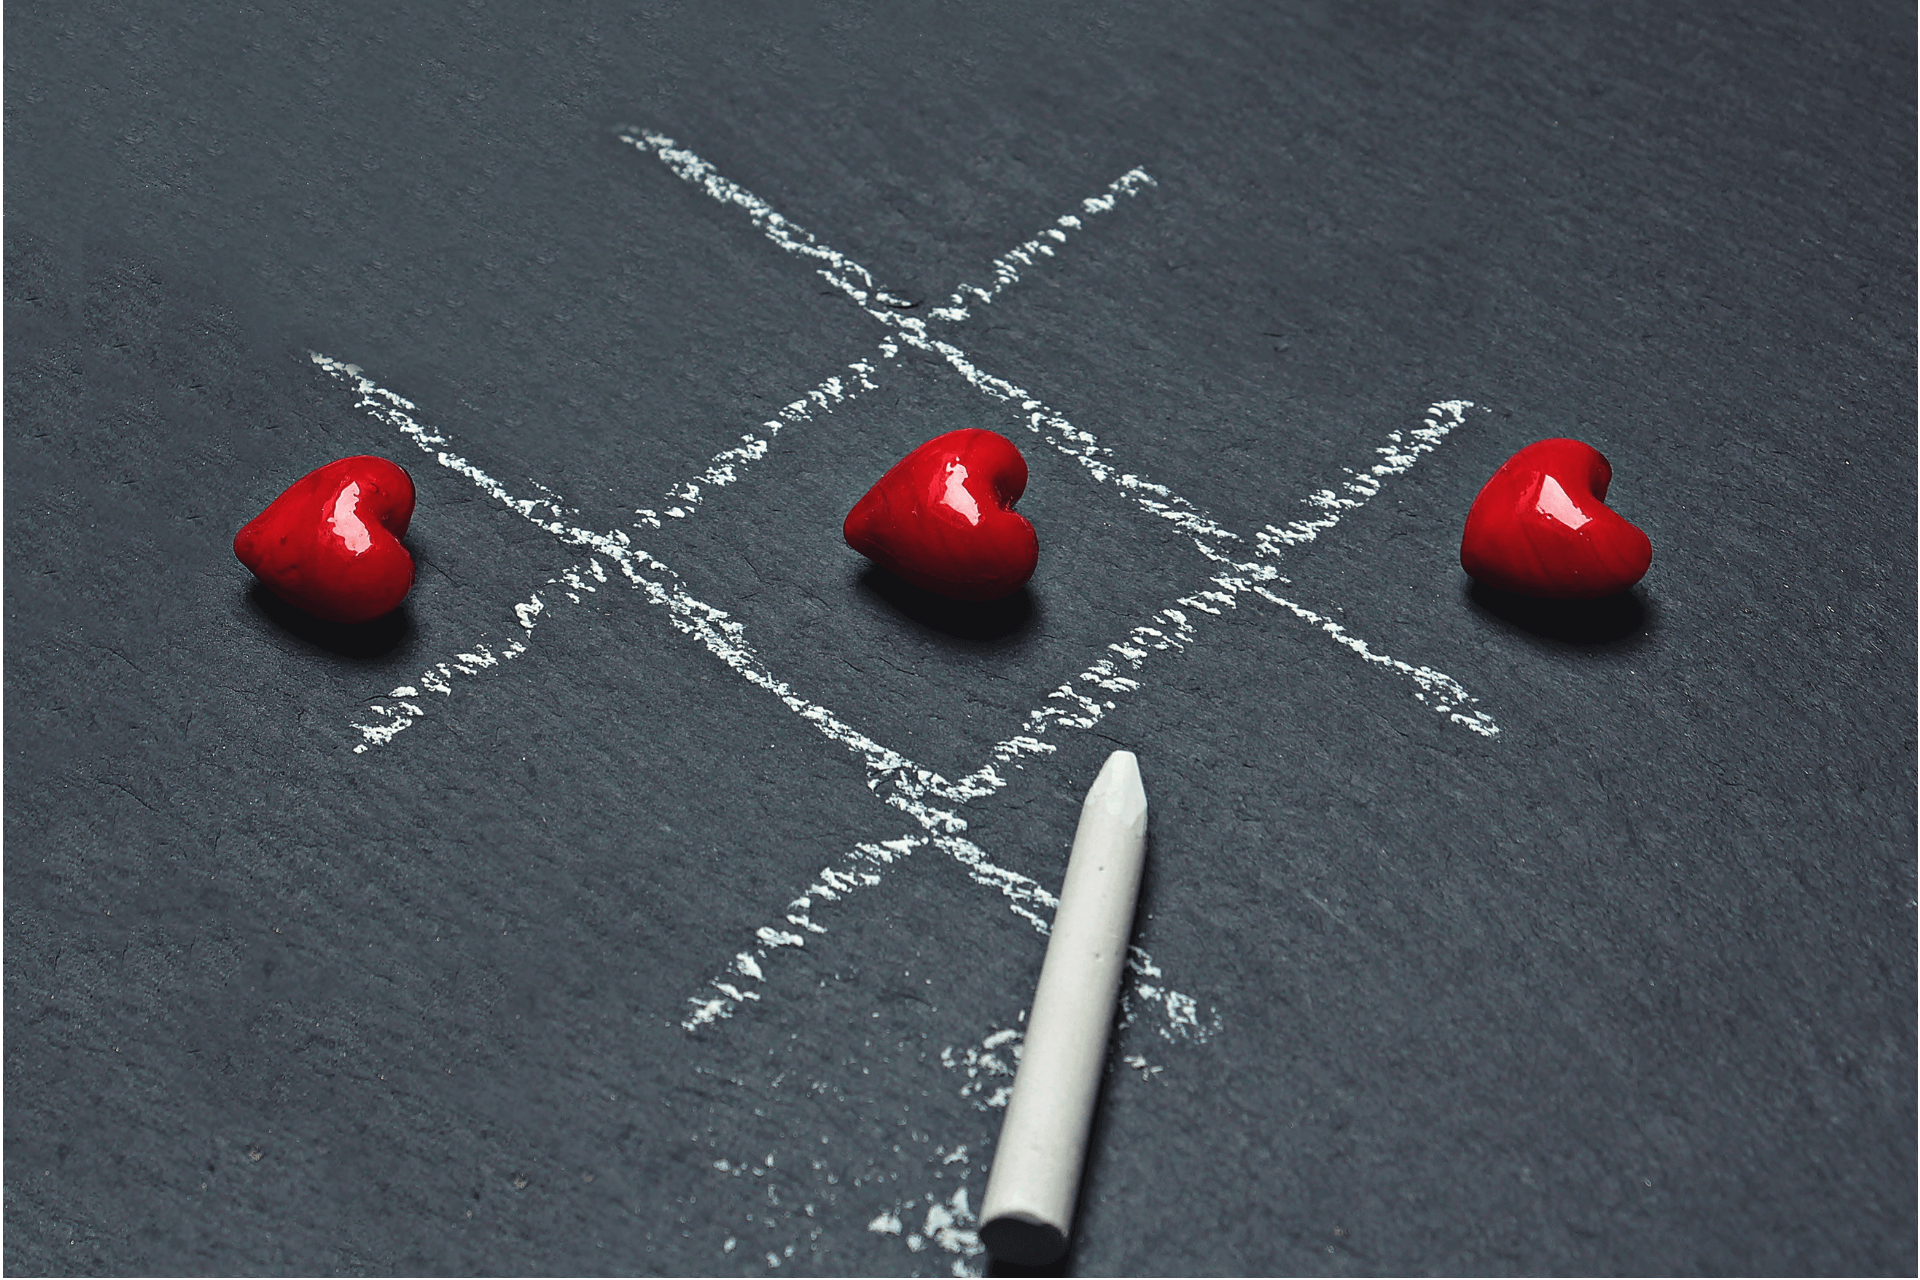 This image depicts 3 hearts on a tic tac toe game, representing the three annual giving strategies for nonprofits explained in the article